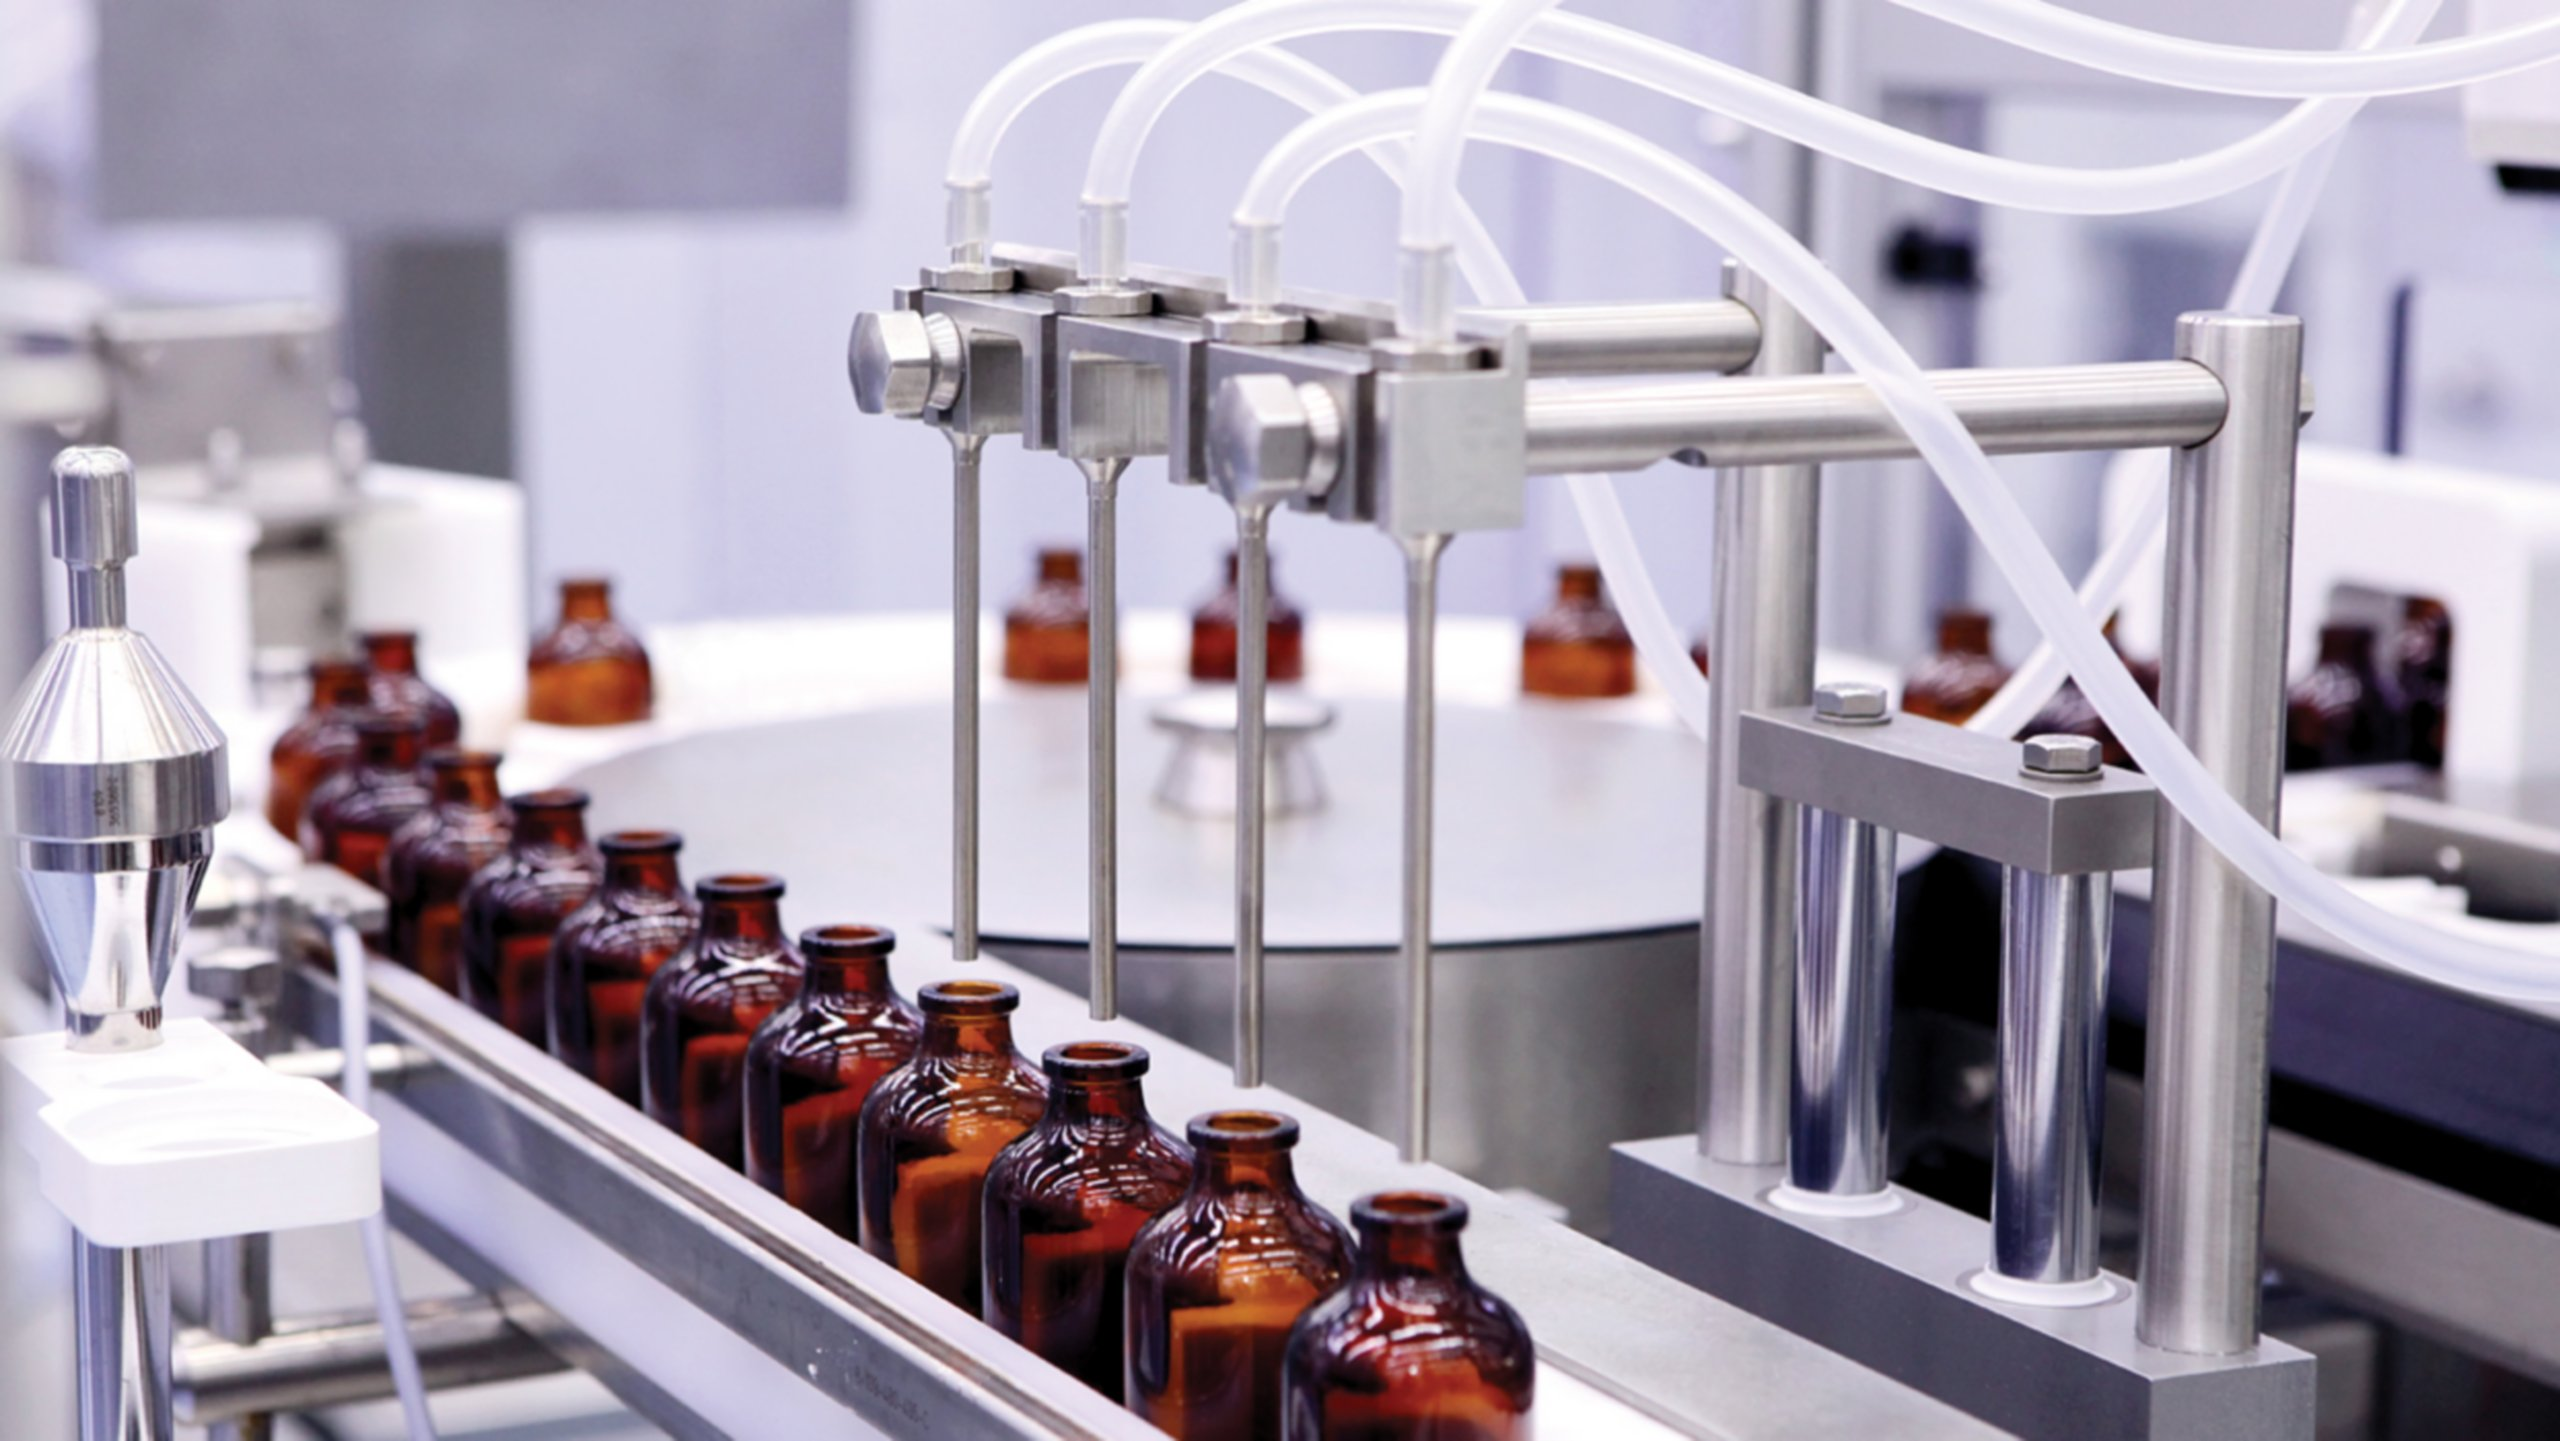 Bottling equipment at a food and beverage processing plant.